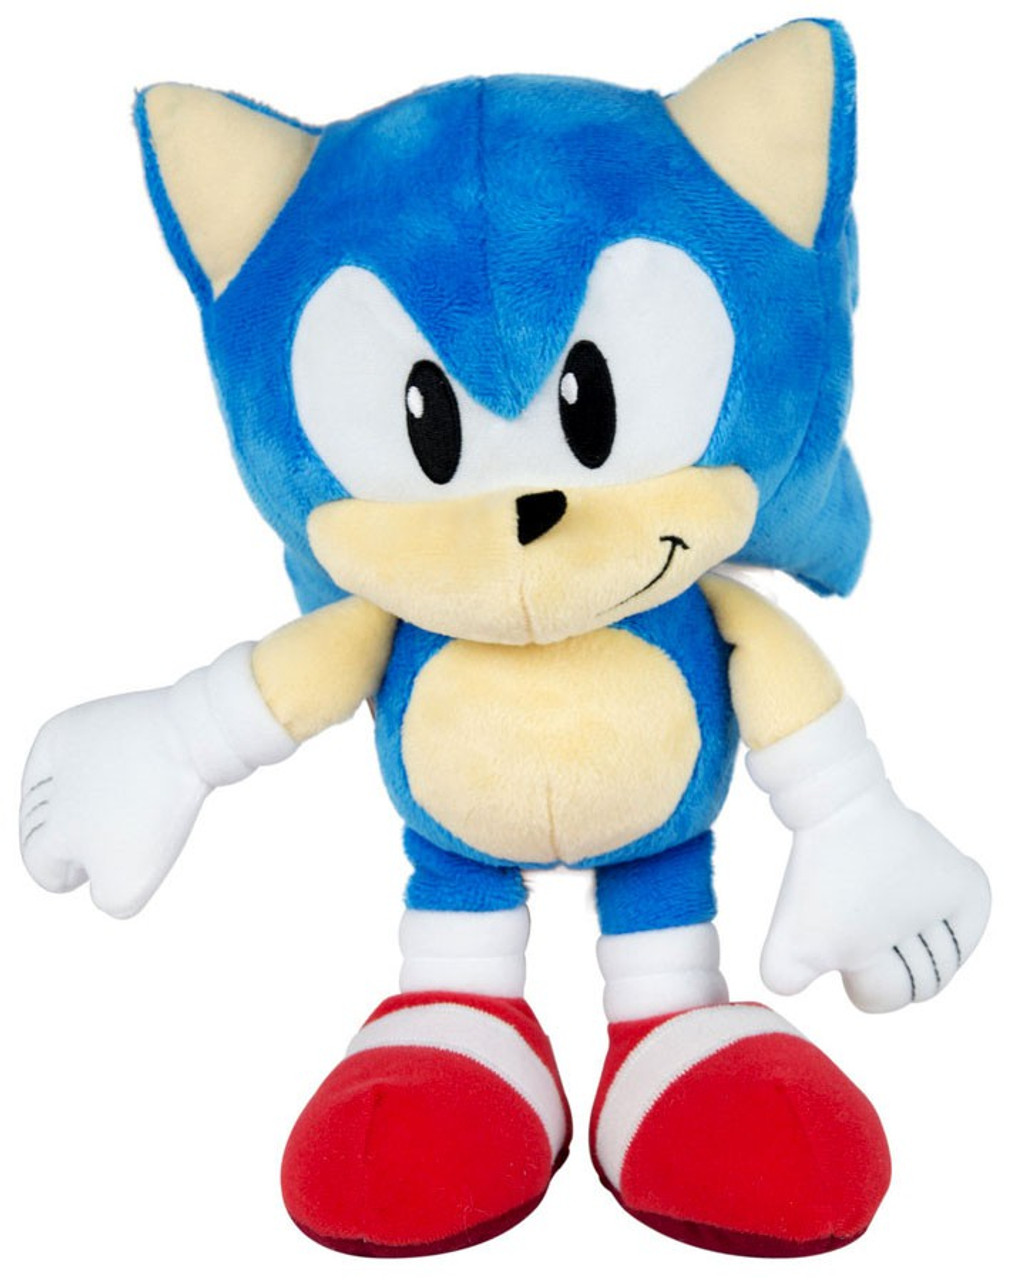 Sonic The Hedgehog Tails 8 Plush Classic, 1992 TOMY - ToyWiz |Sonic The Hedgehog Plush Toys